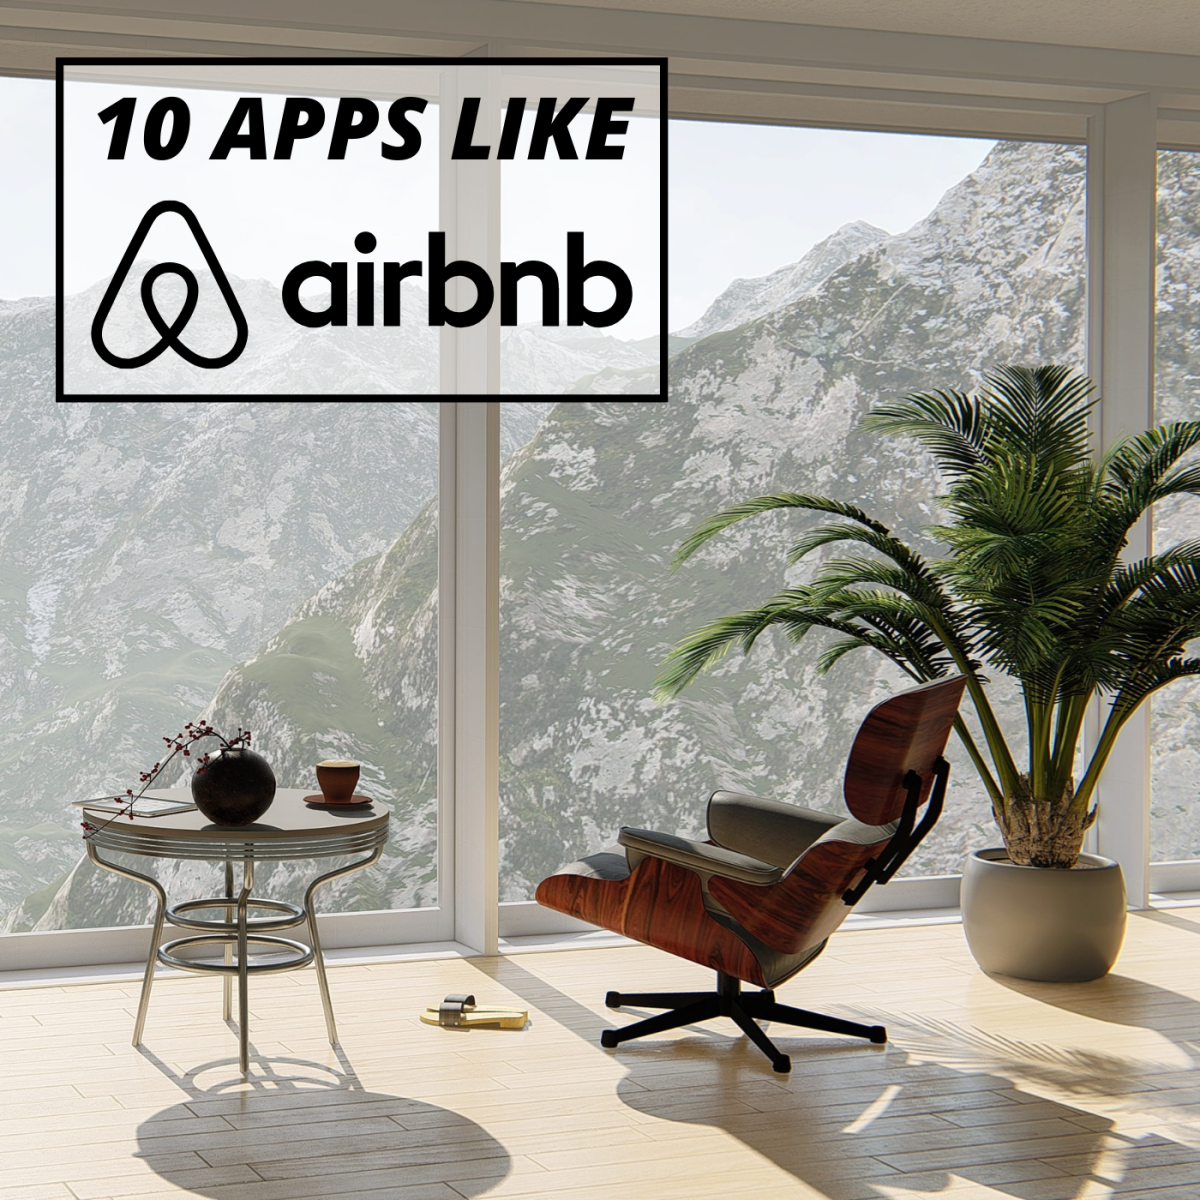 Airbnb is great, but if it doesn't have what you're looking for, one of these other sites probably will.